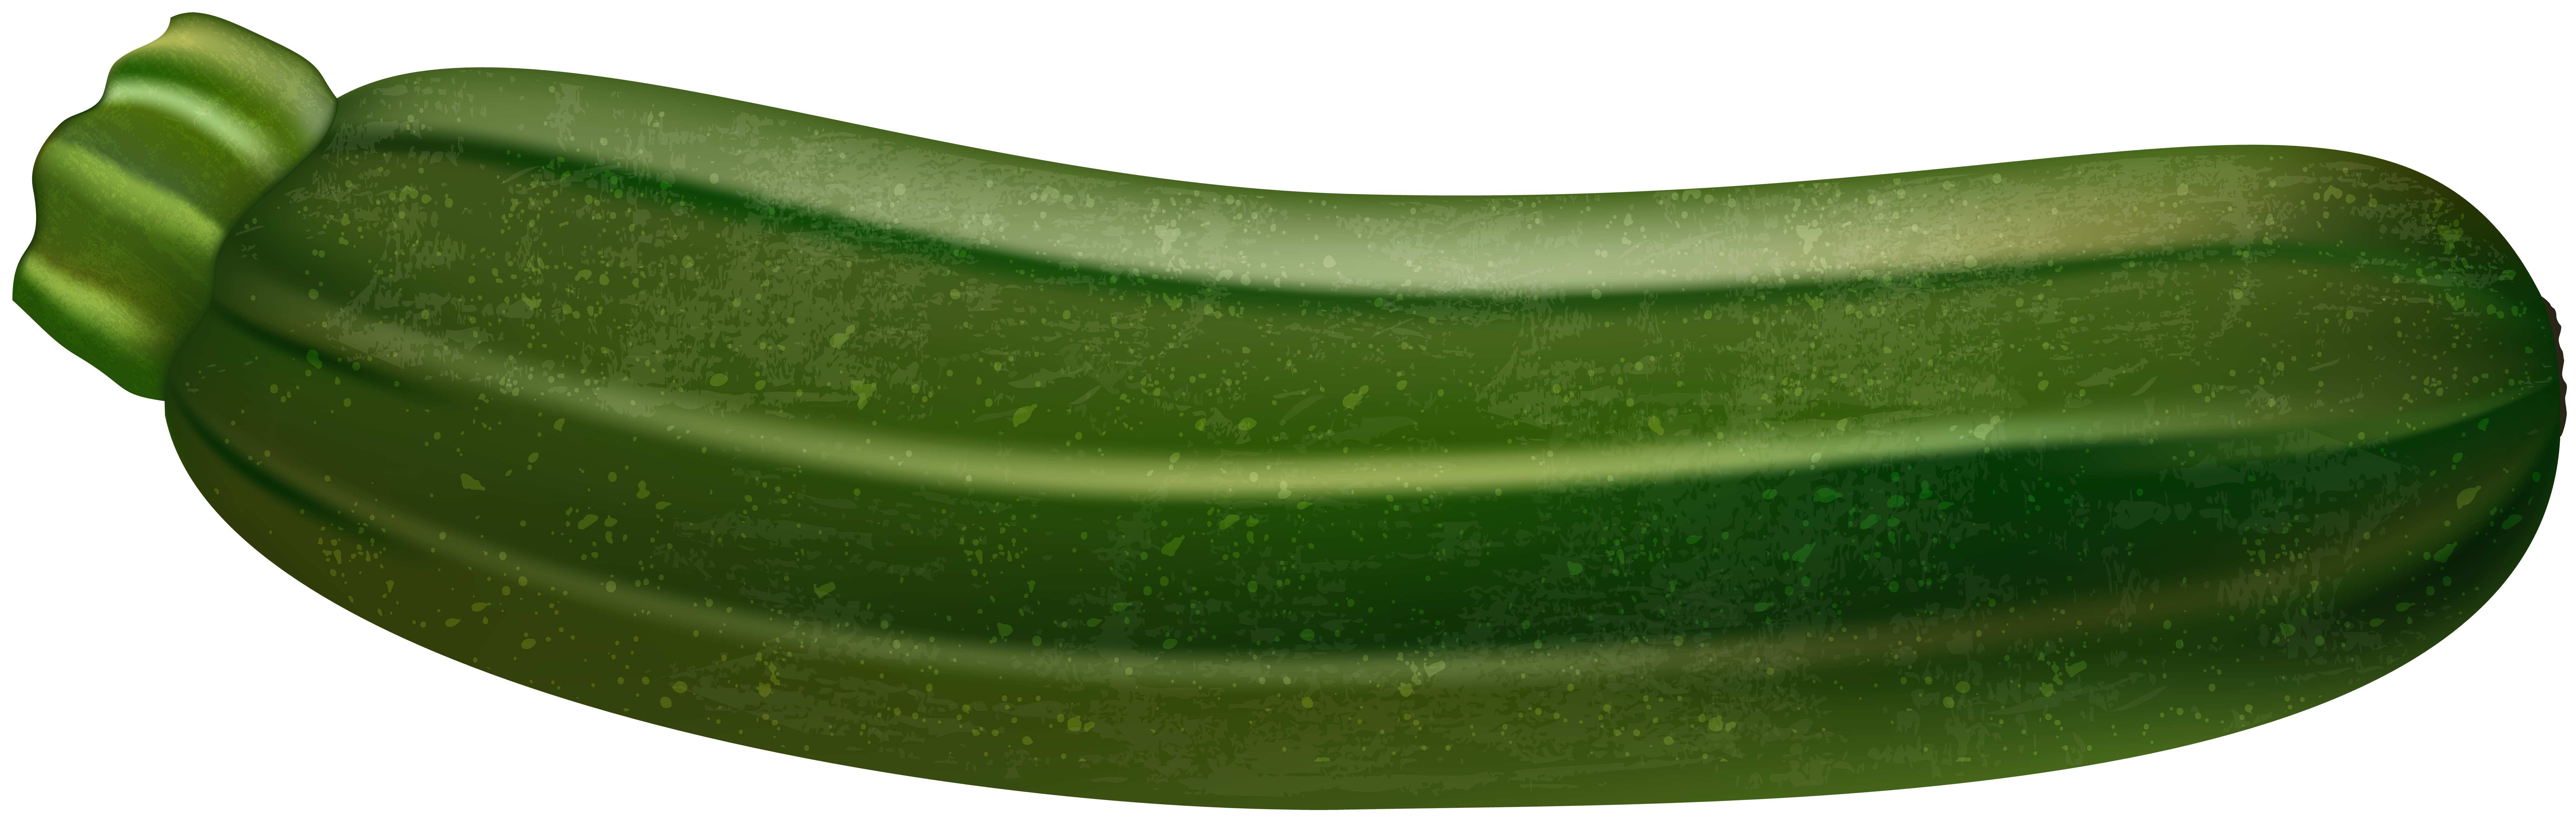 jpg freeuse library Transparent png clip art. Zucchini clipart happy